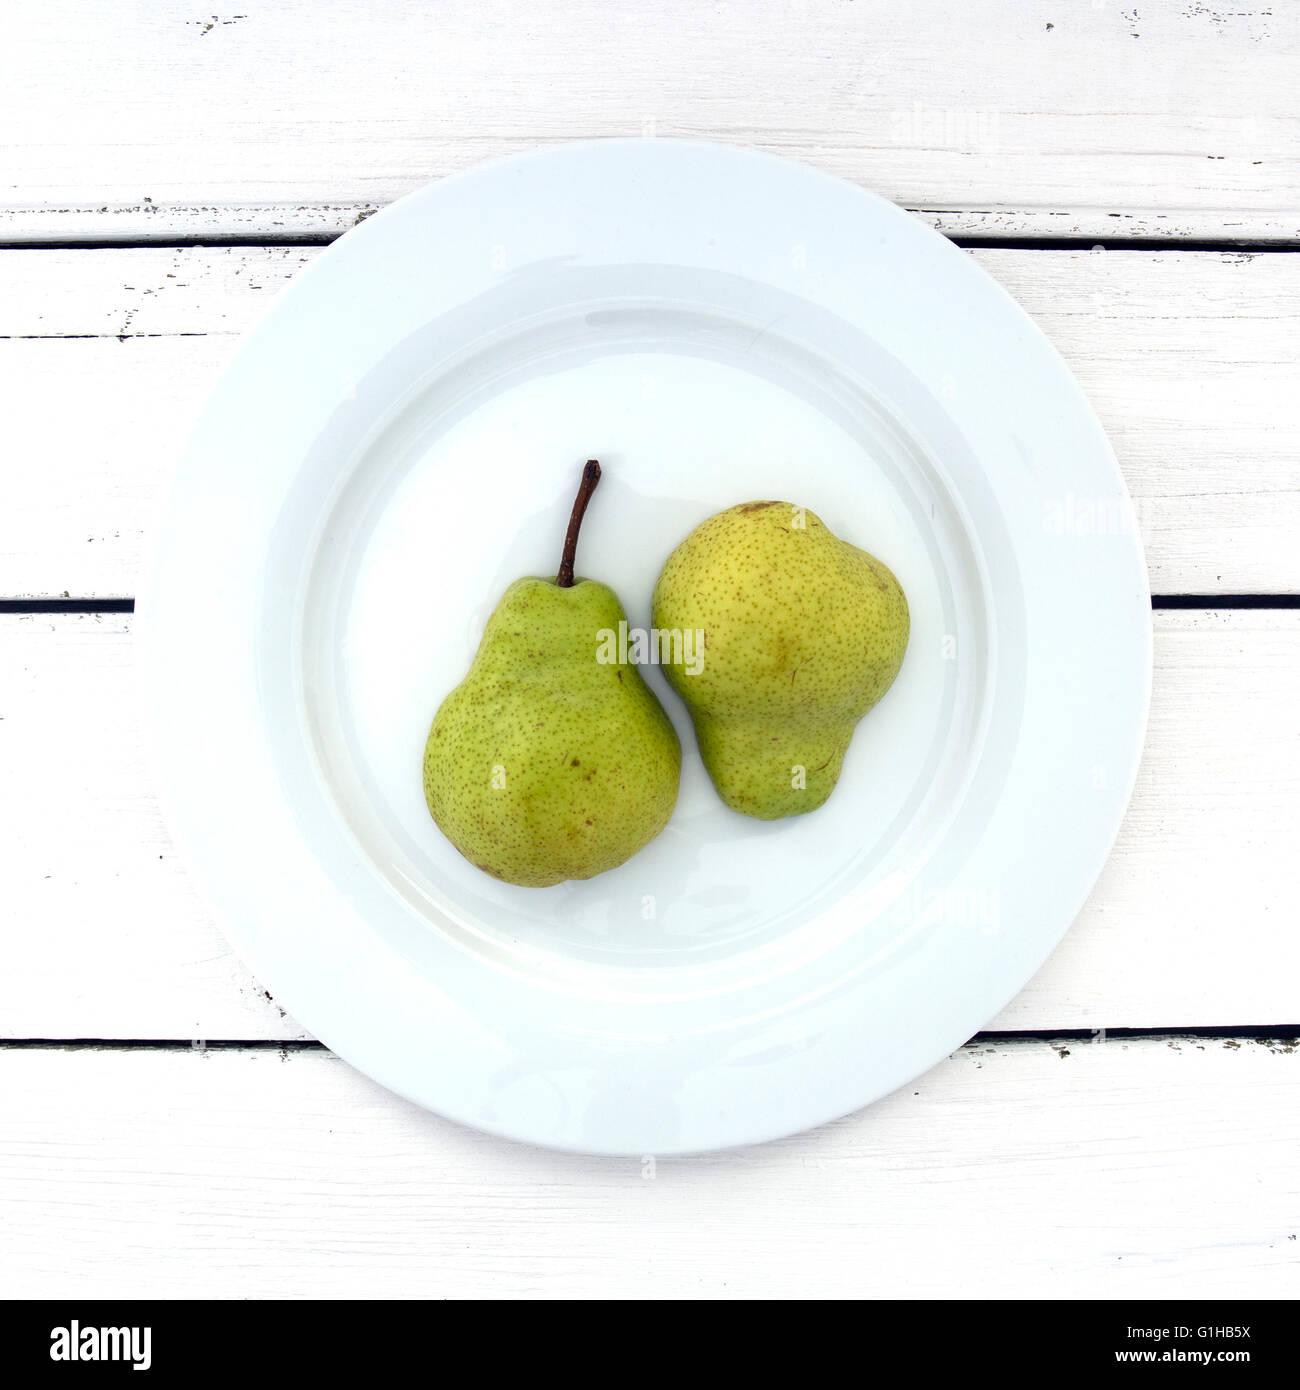 Two Pear Half's on a white plate over a retro white wooden background - Stock Image